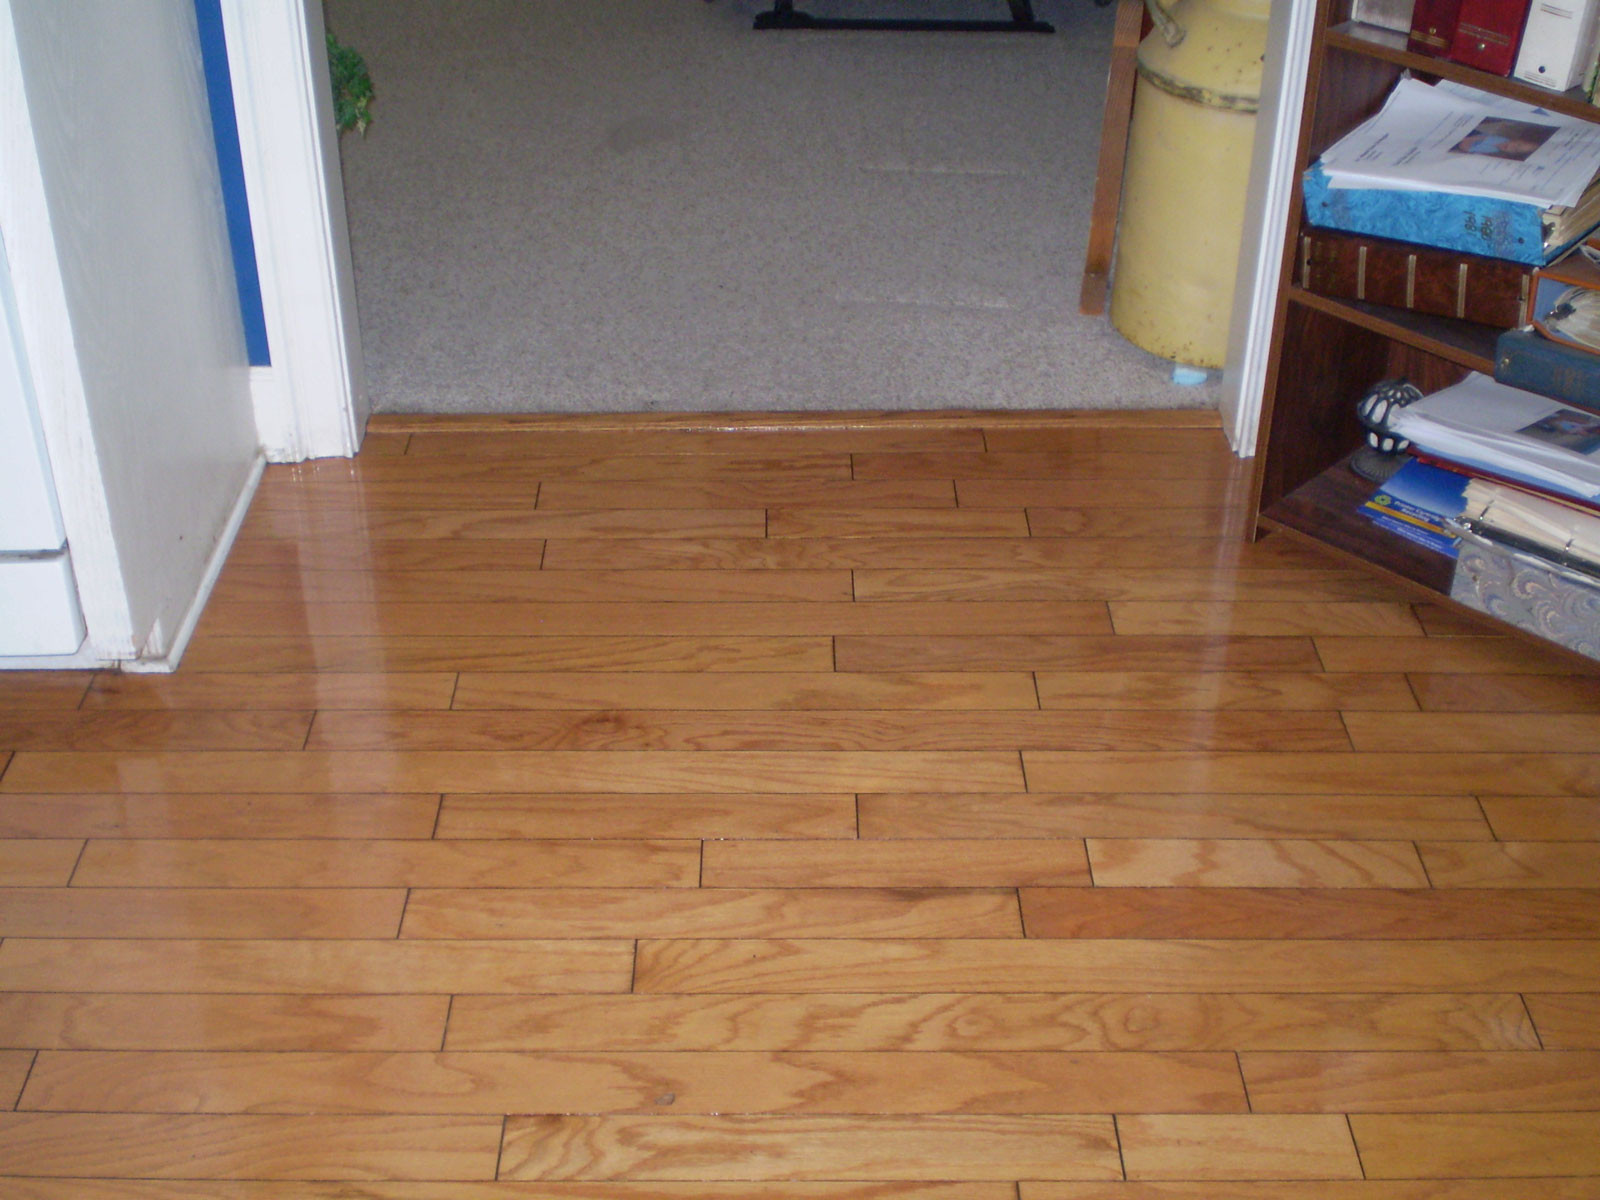 hardwood floor refinishing near me of how to refinish wood floors step by step evergreen hardwood floors within flooring how to refinish wood floors step by step will refinishingod floors pet stains old without sanding